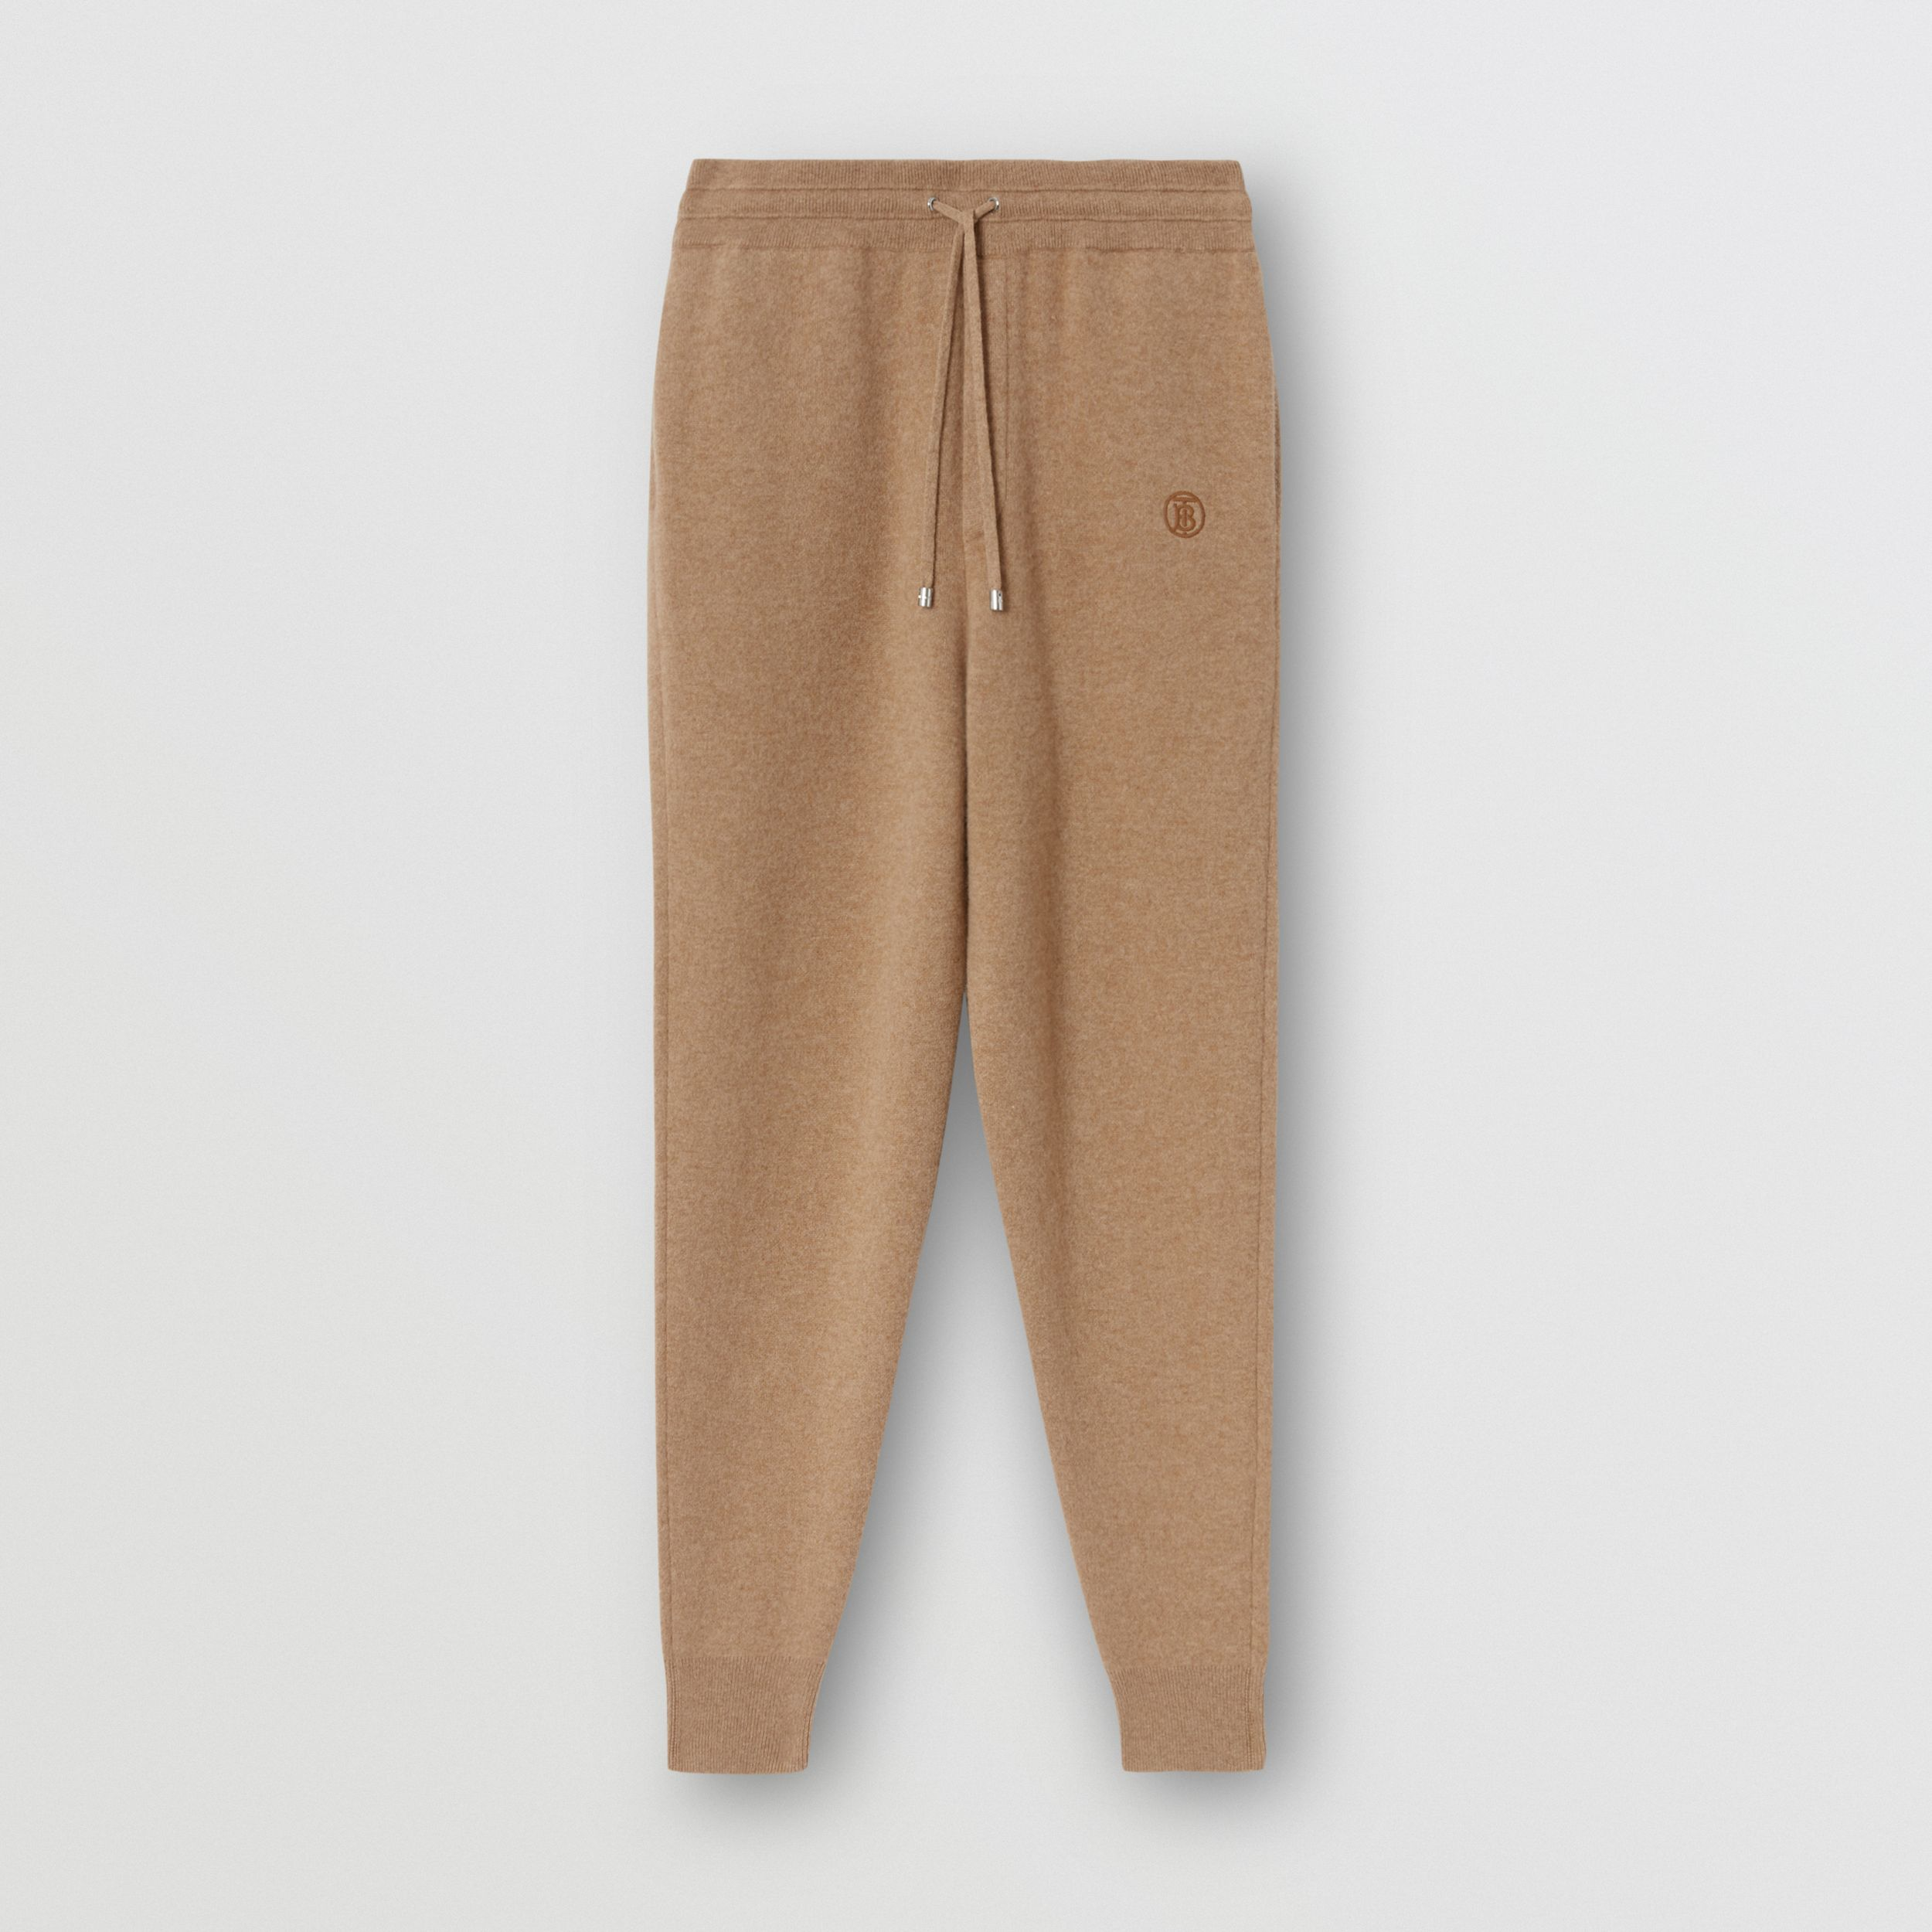 Monogram Motif Cashmere Blend Trackpants in Pale Coffee - Men | Burberry - 4